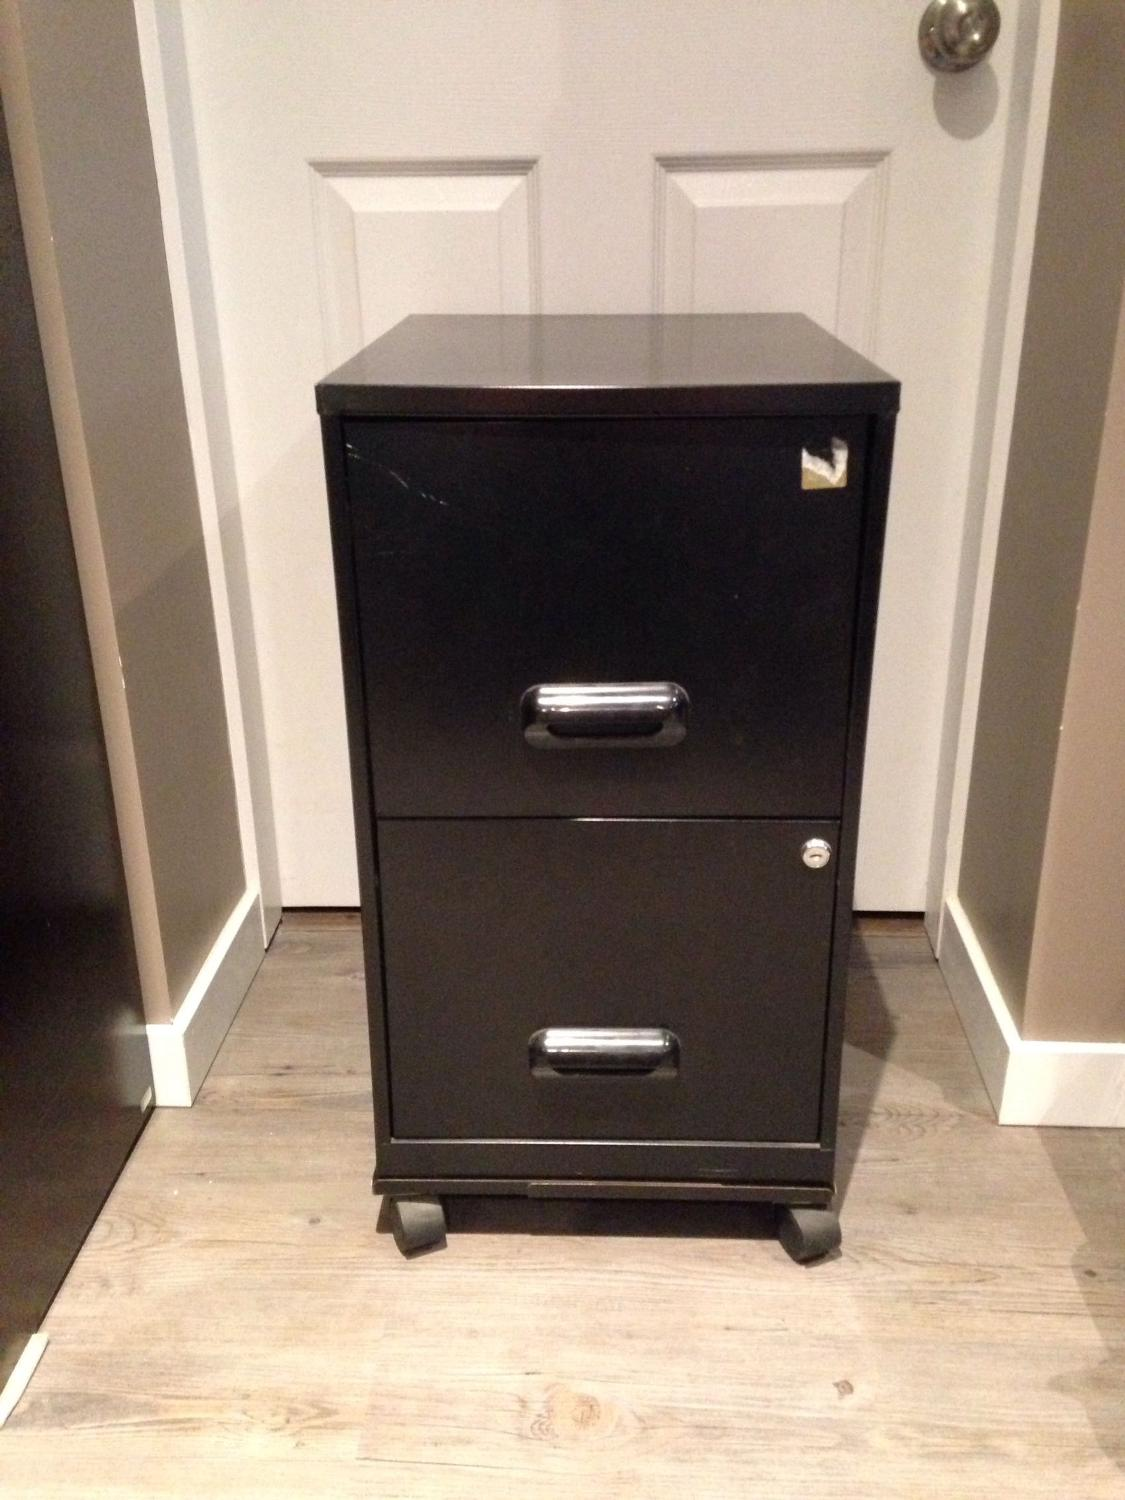 find more 2 drawer metal filing cabinet on wheels for sale at up to 90 off victoria bc. Black Bedroom Furniture Sets. Home Design Ideas